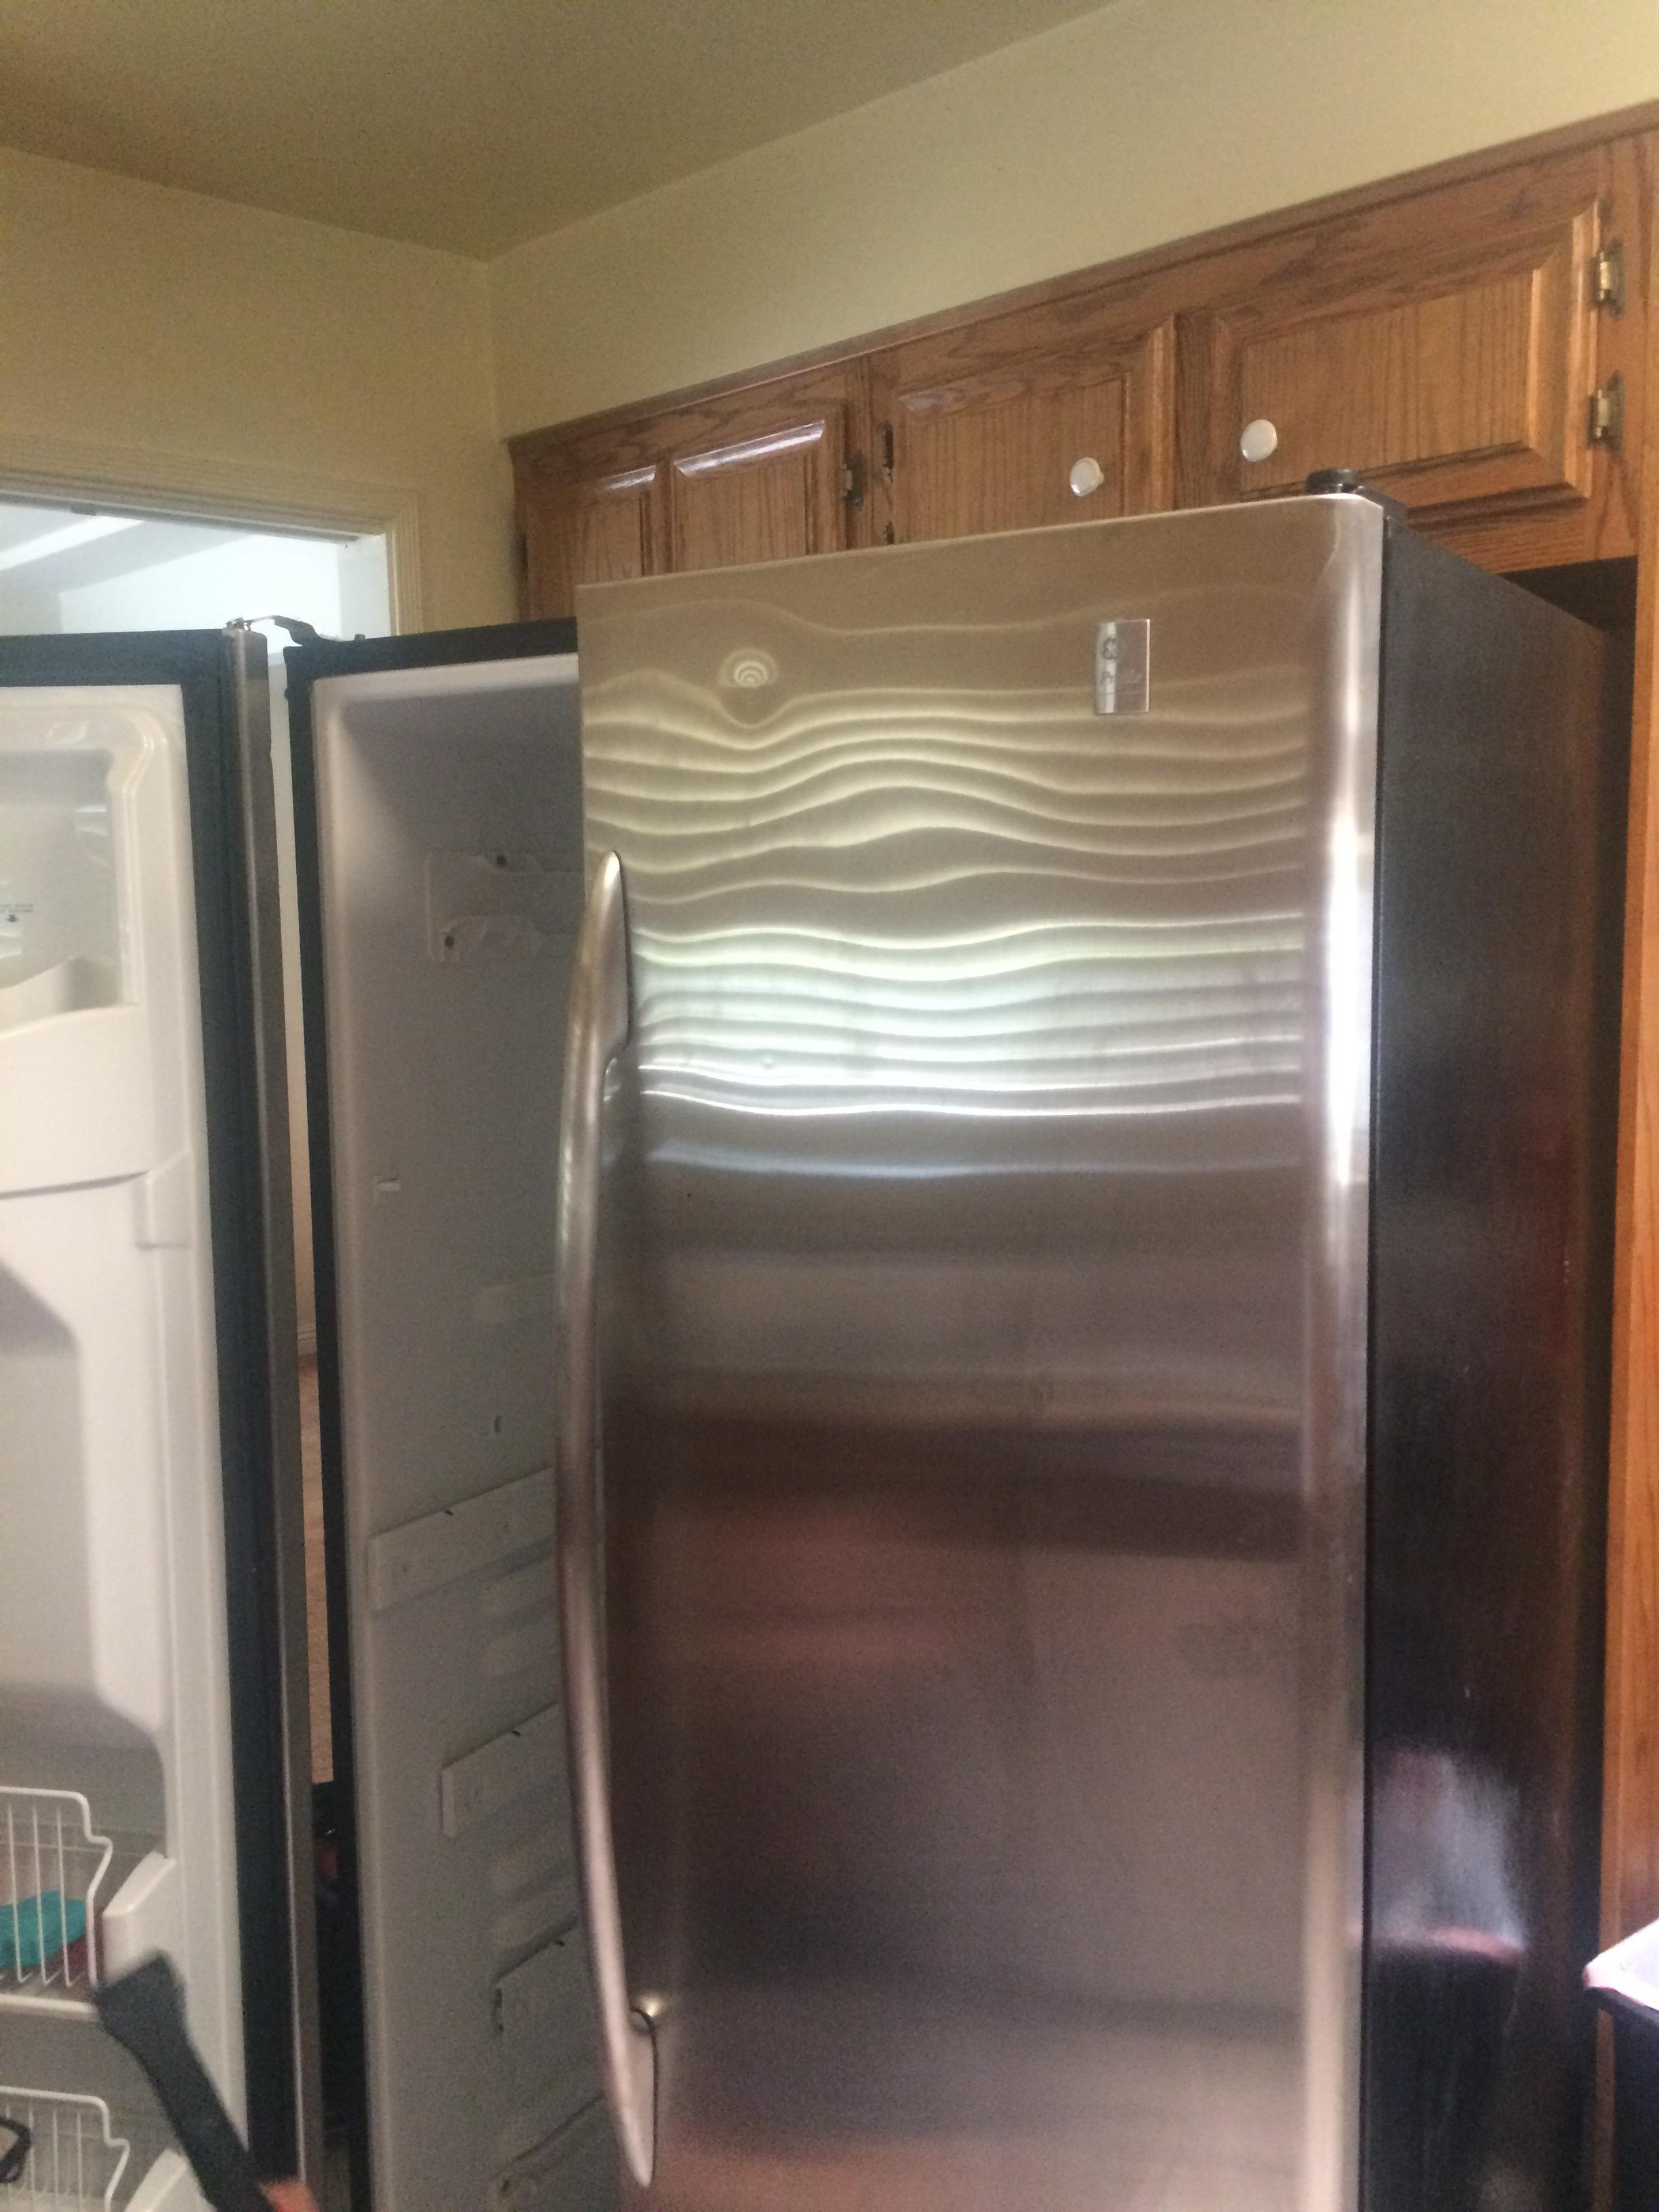 Royal Touch Appliance Repair Coupons Near Me In 8coupons